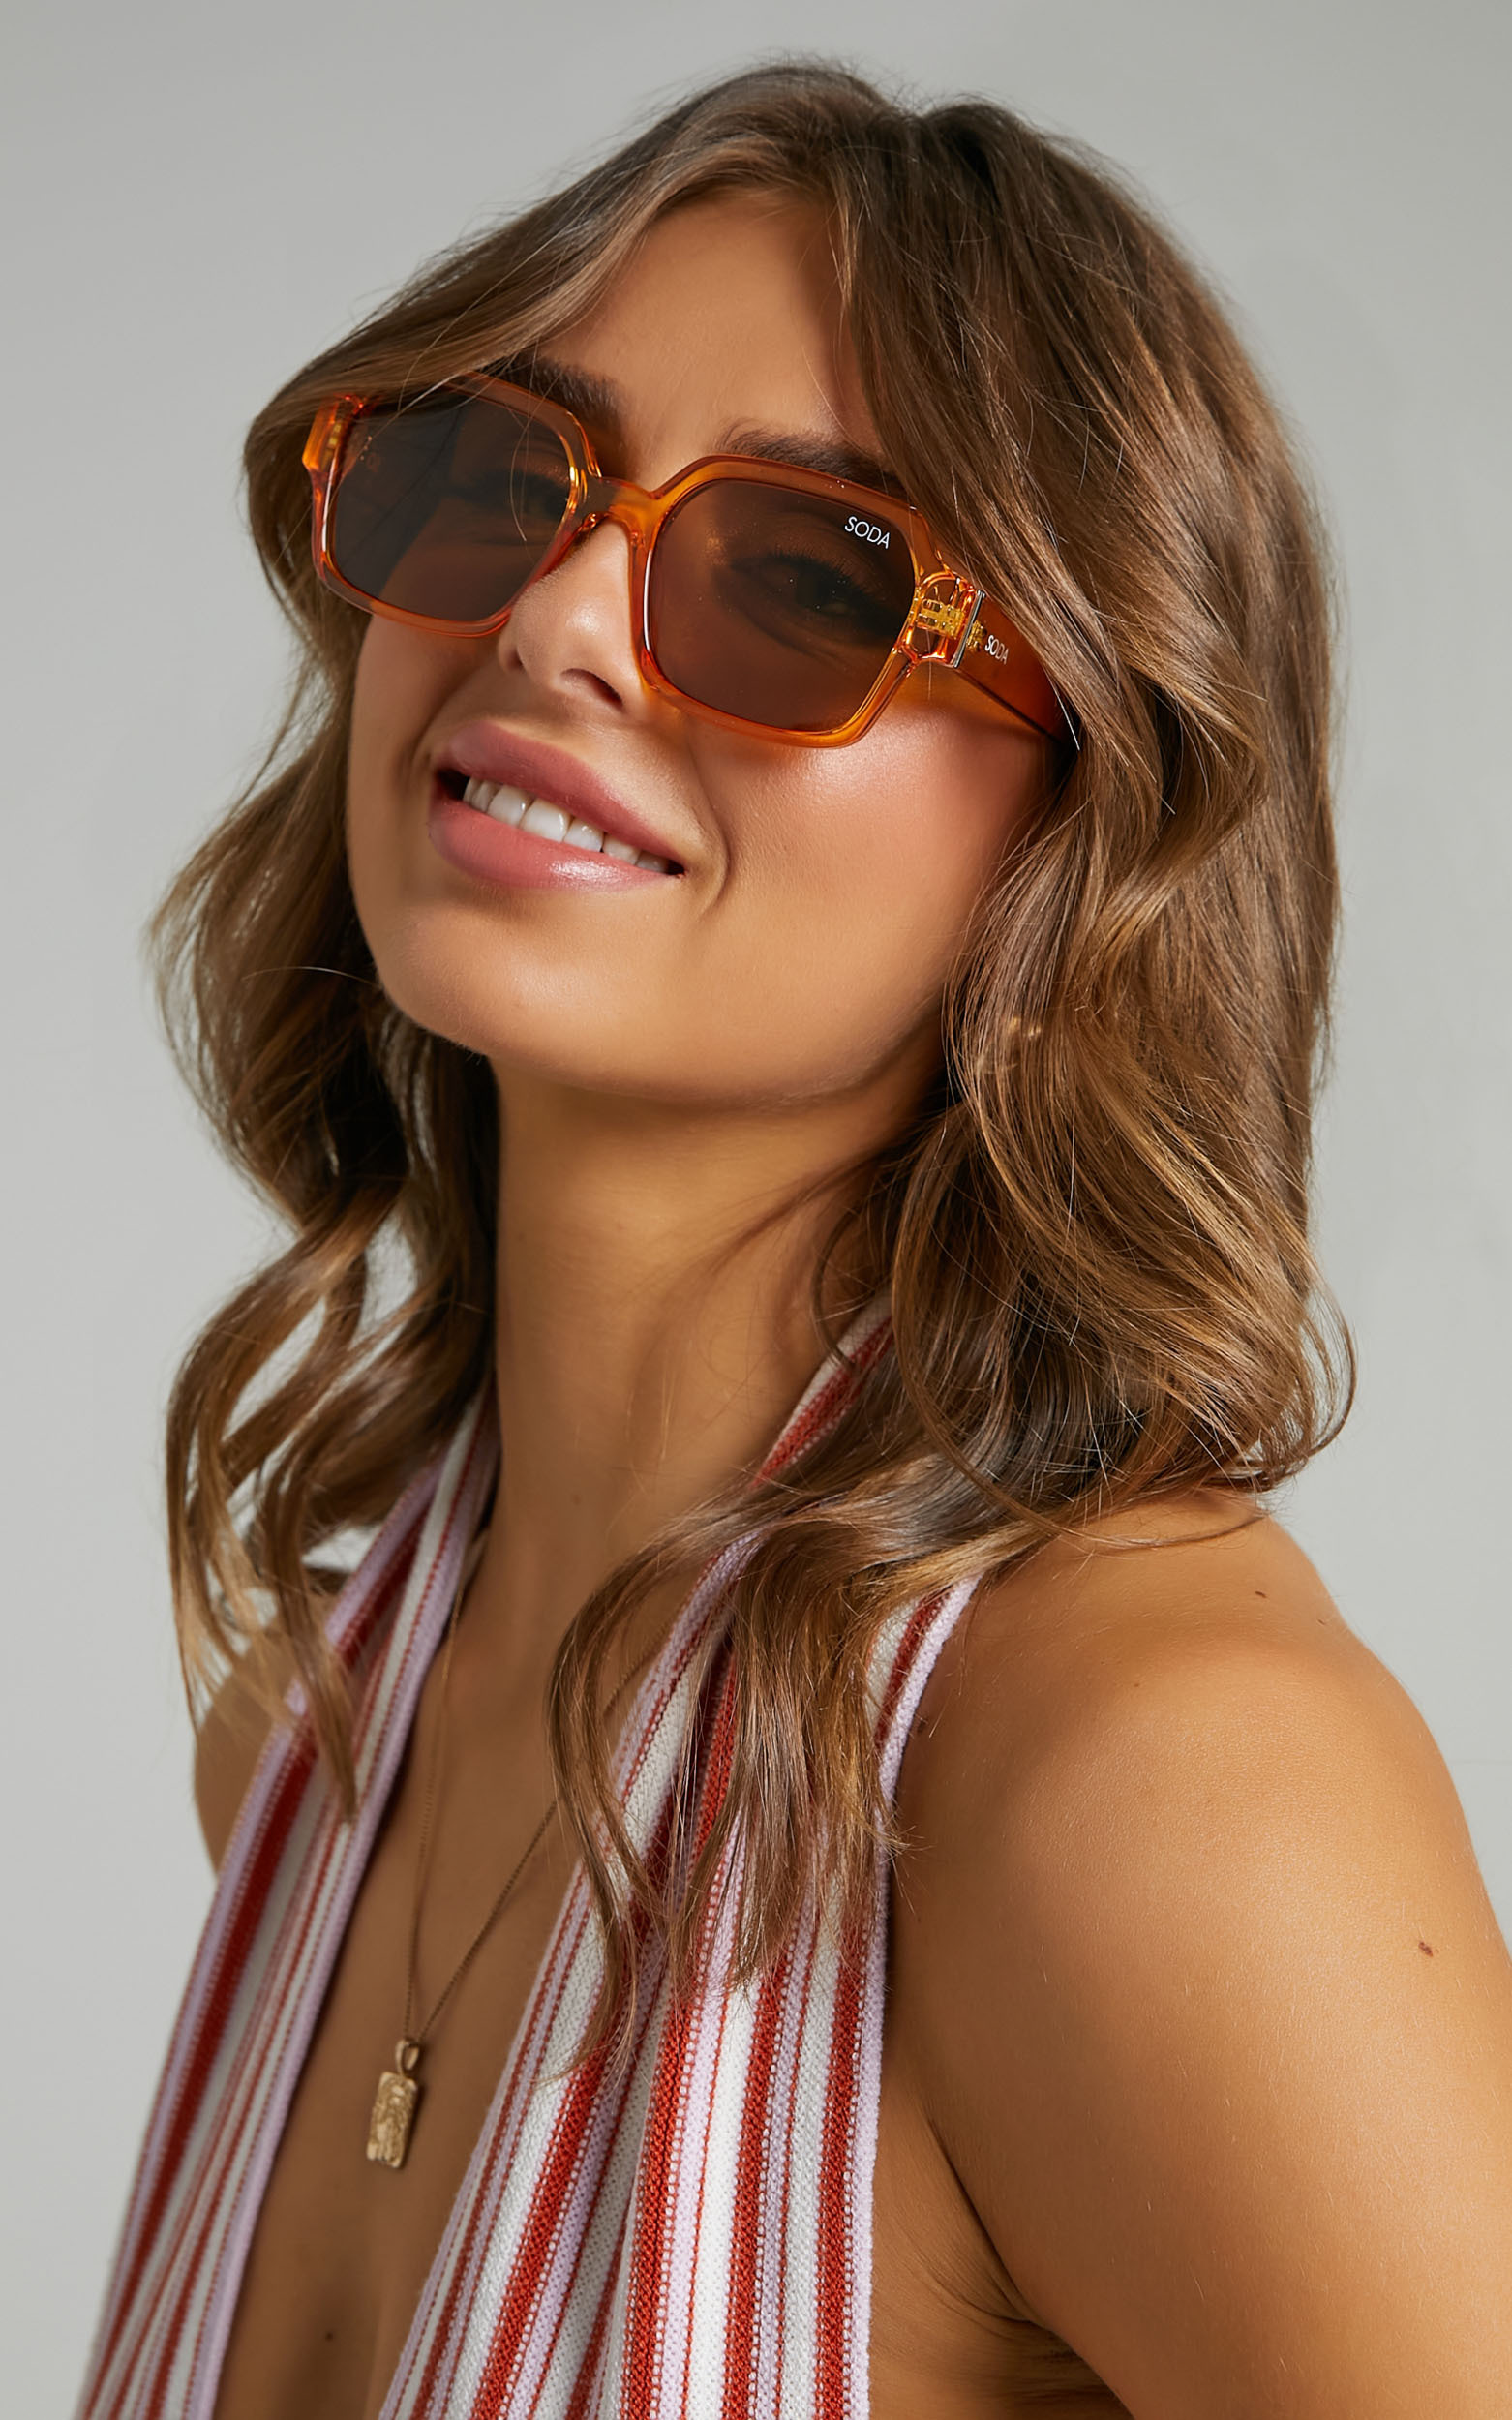 Soda Shades - Leyla Sunglasses in Amber - NoSize, ORG2, hi-res image number null